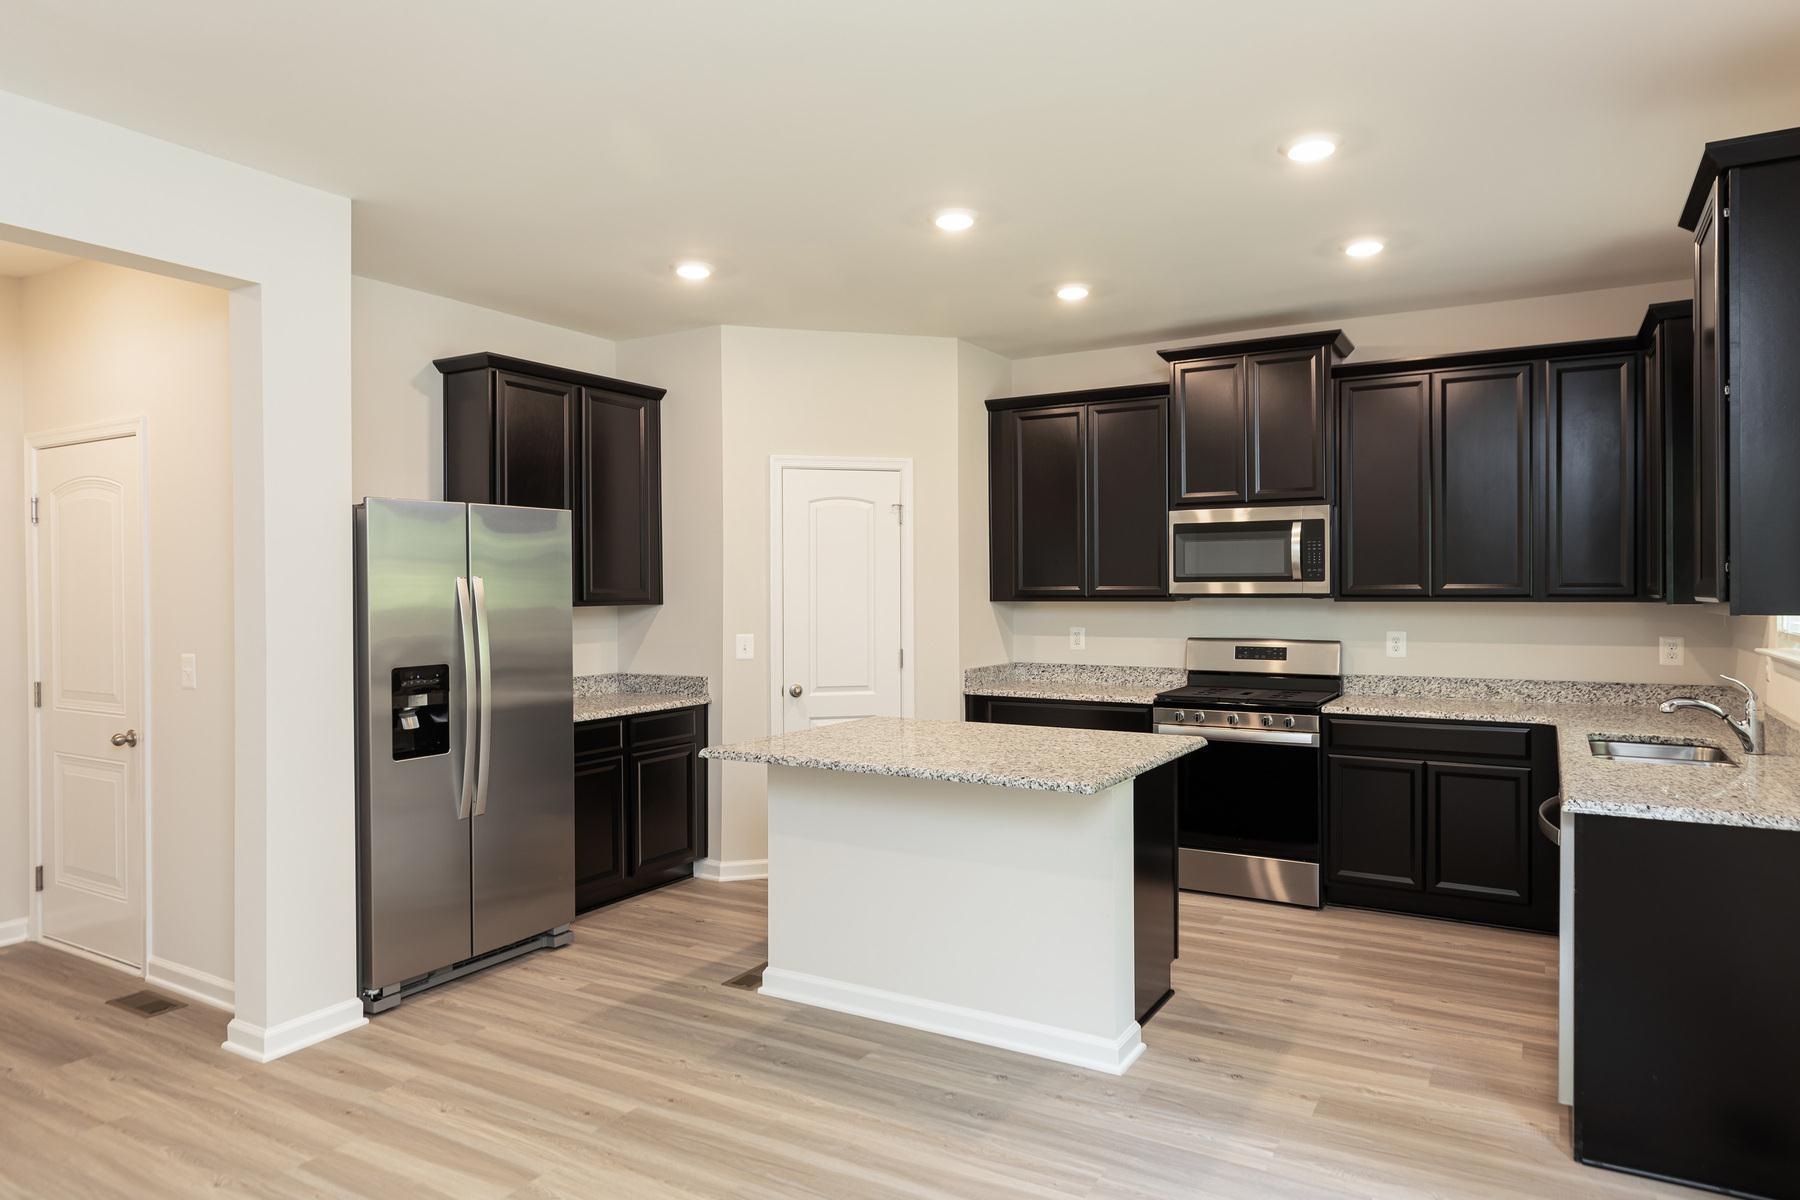 Kitchen featured in the Conway By LGI Homes in Richmond-Petersburg, VA